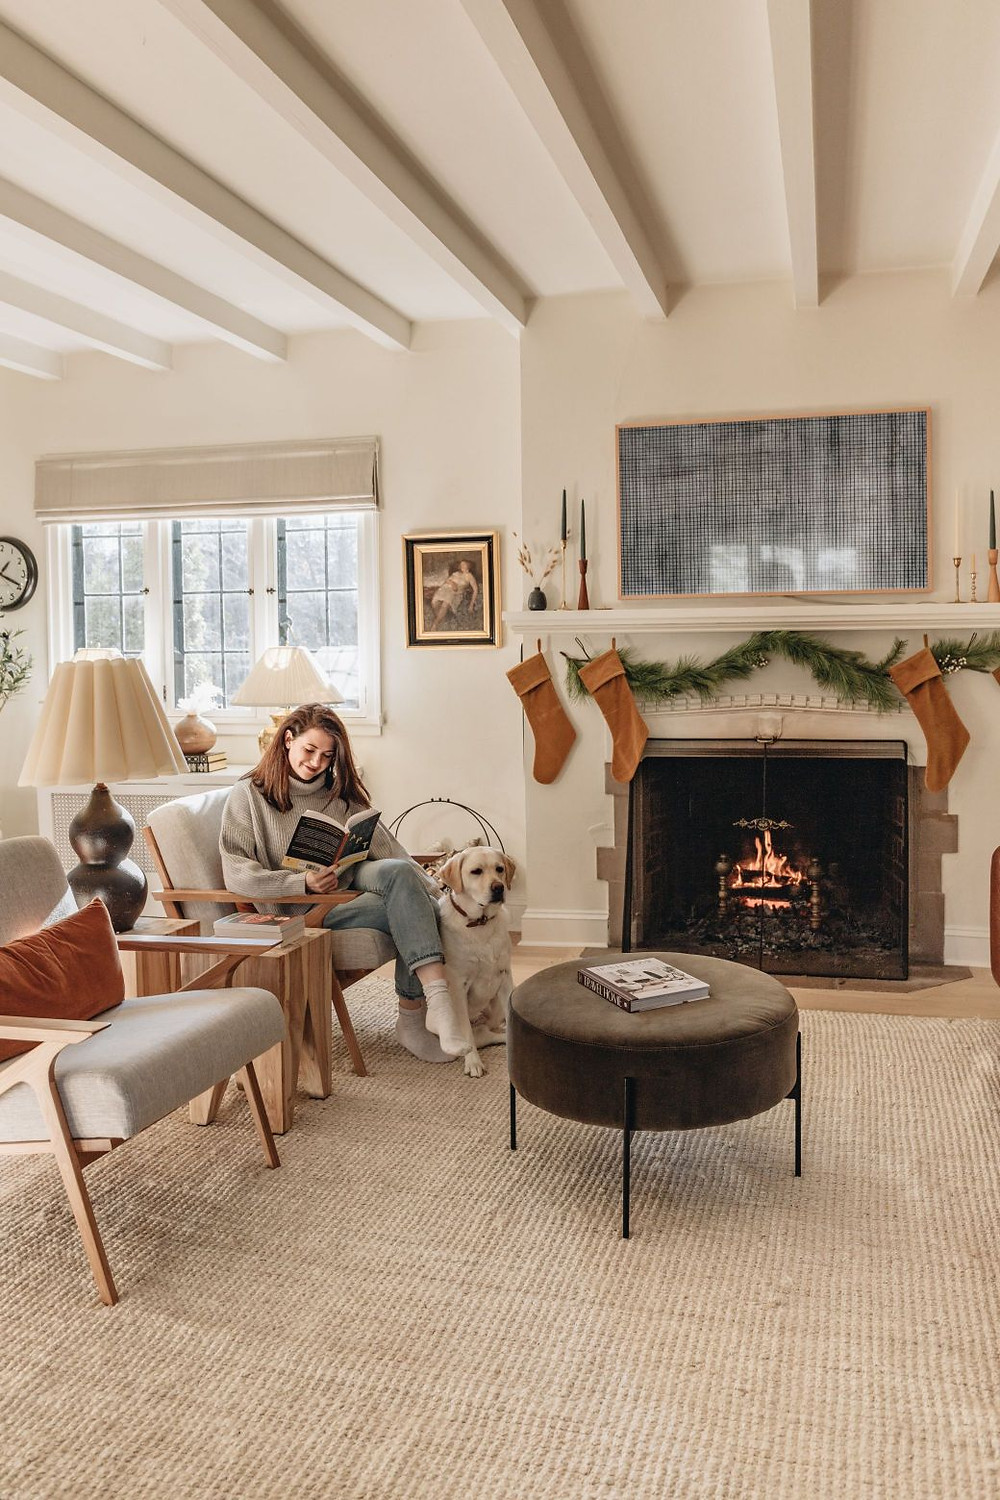 A woman reading a book on a gray and neutral wood sitting chair in front of a lit fireplace with orange stockings and a green garland across the mantle.